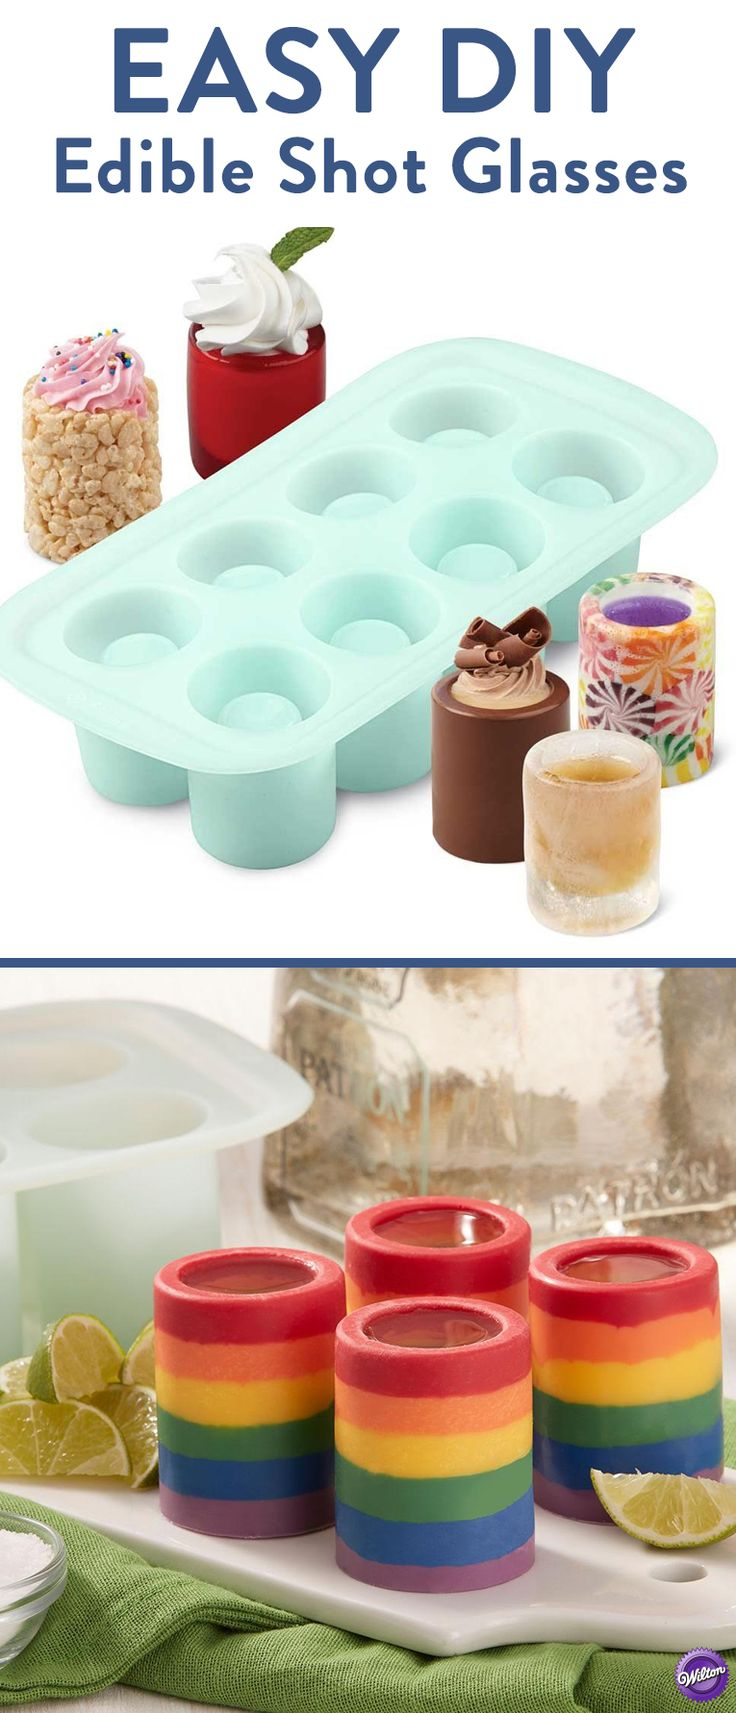 "Easiest Way to Make Edible Candy Shot Glasses -  Use Candy Melts candy colors to make these Rainbow Candy Shot Glasses. Fill with layers of melted candy in alternating colors. Let it harden, and just ""pop"" them right out of the flexible silicone mold. Serve filled with liquor or even ice cream! This versatile silicone mold is oven-safe up to 500°F and freezer-safe. Make hard candy shot glasses, frozen shot glasses and jello shot glasses, too! Plus, it's dishwasher-safe so cleanup is a cinch."